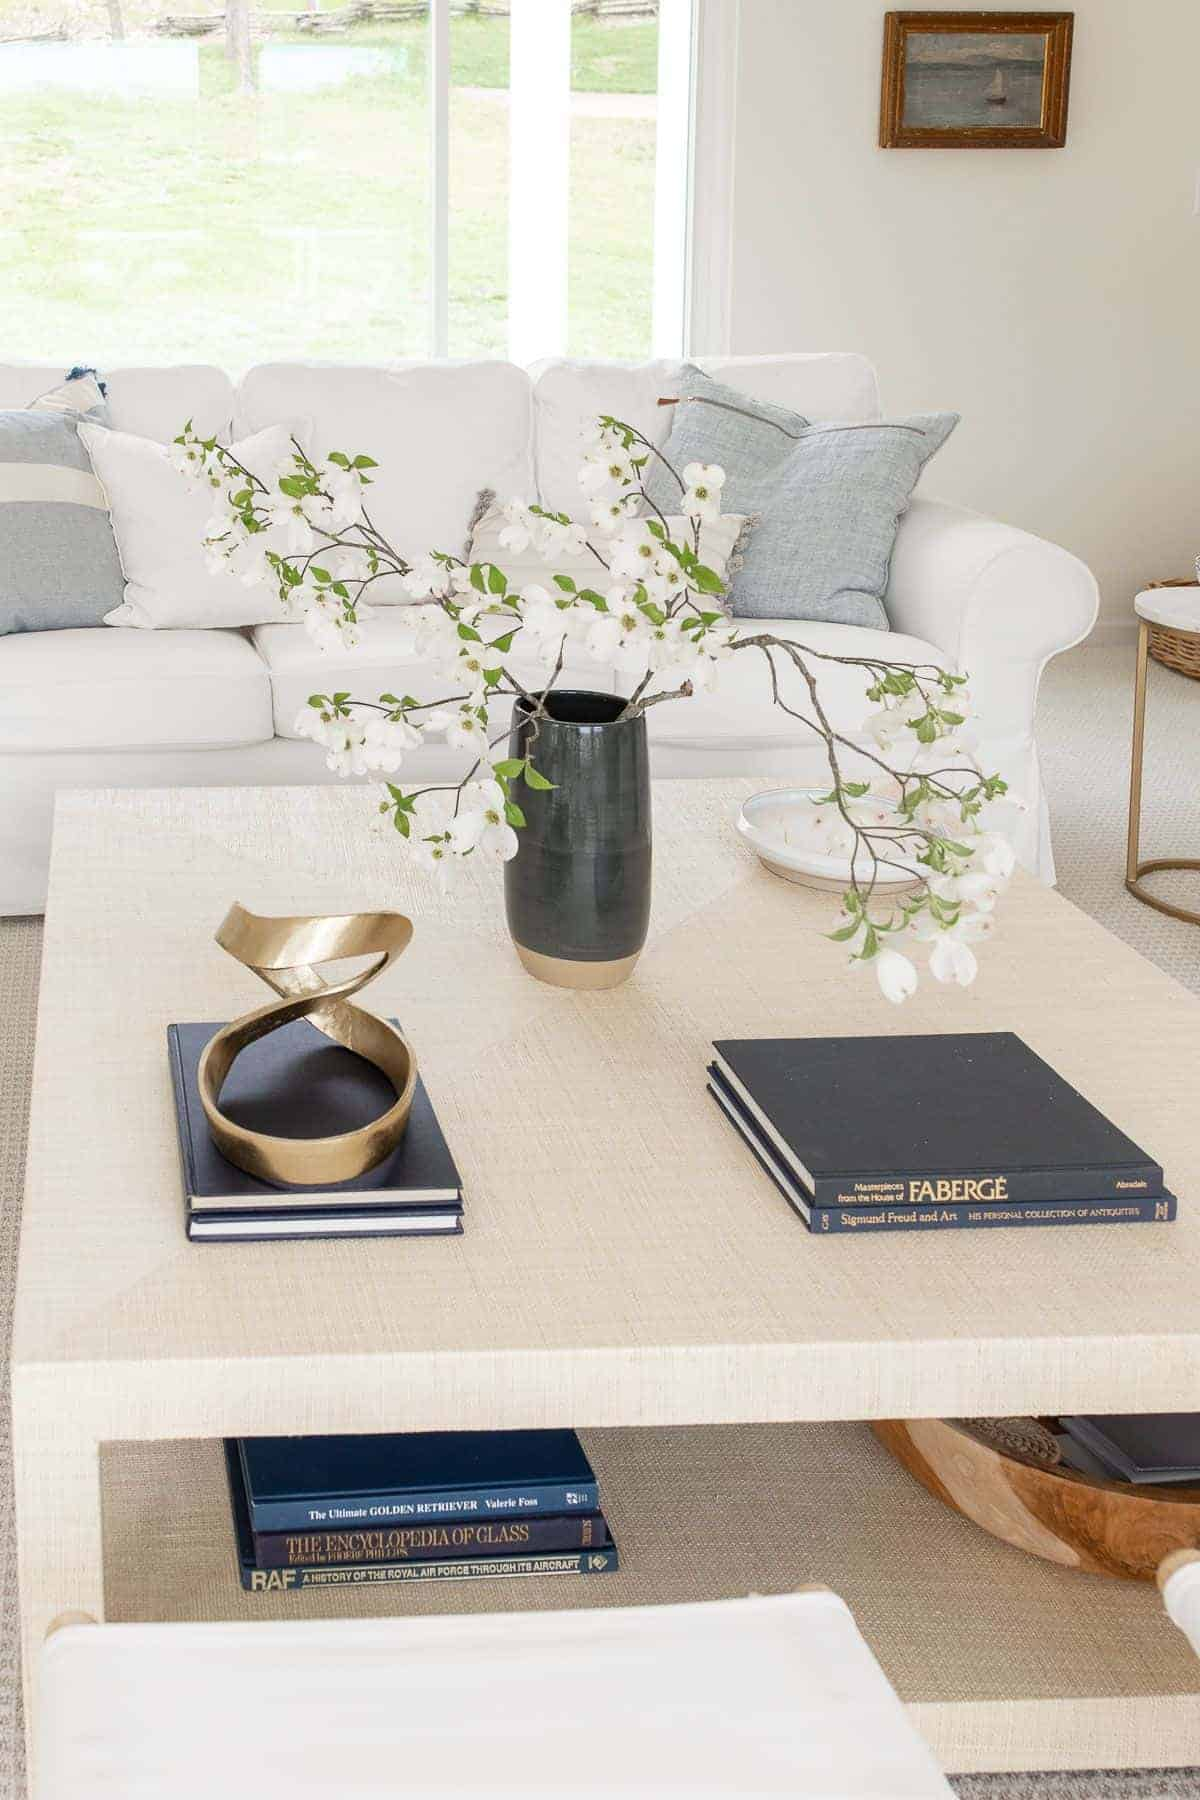 A raffia coffee table decorated in a coastal modern living room style, with a navy vase of blooming branches.